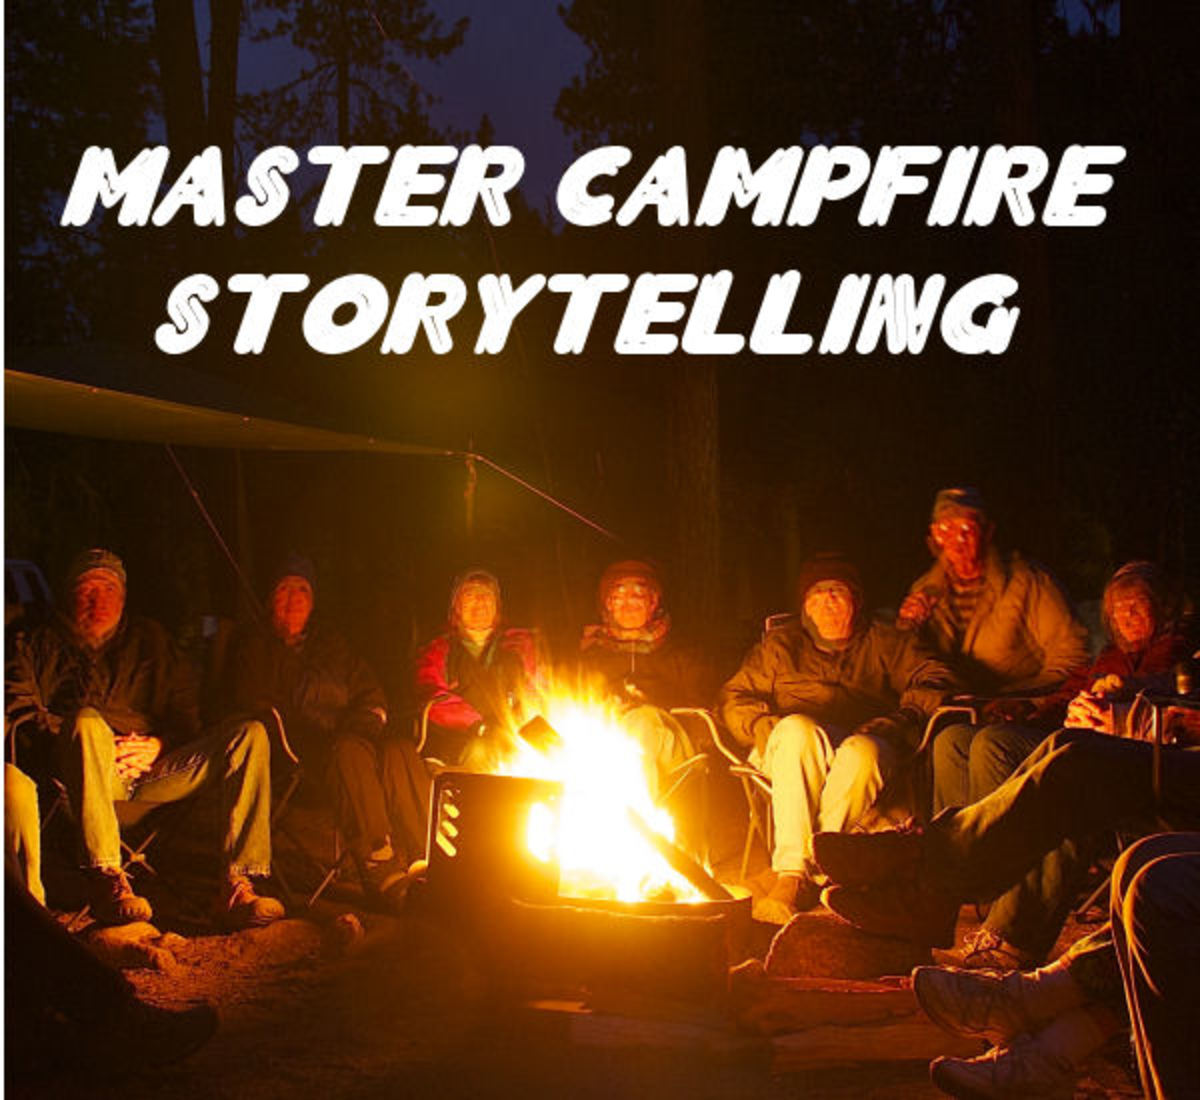 The tradition of campfire storytelling